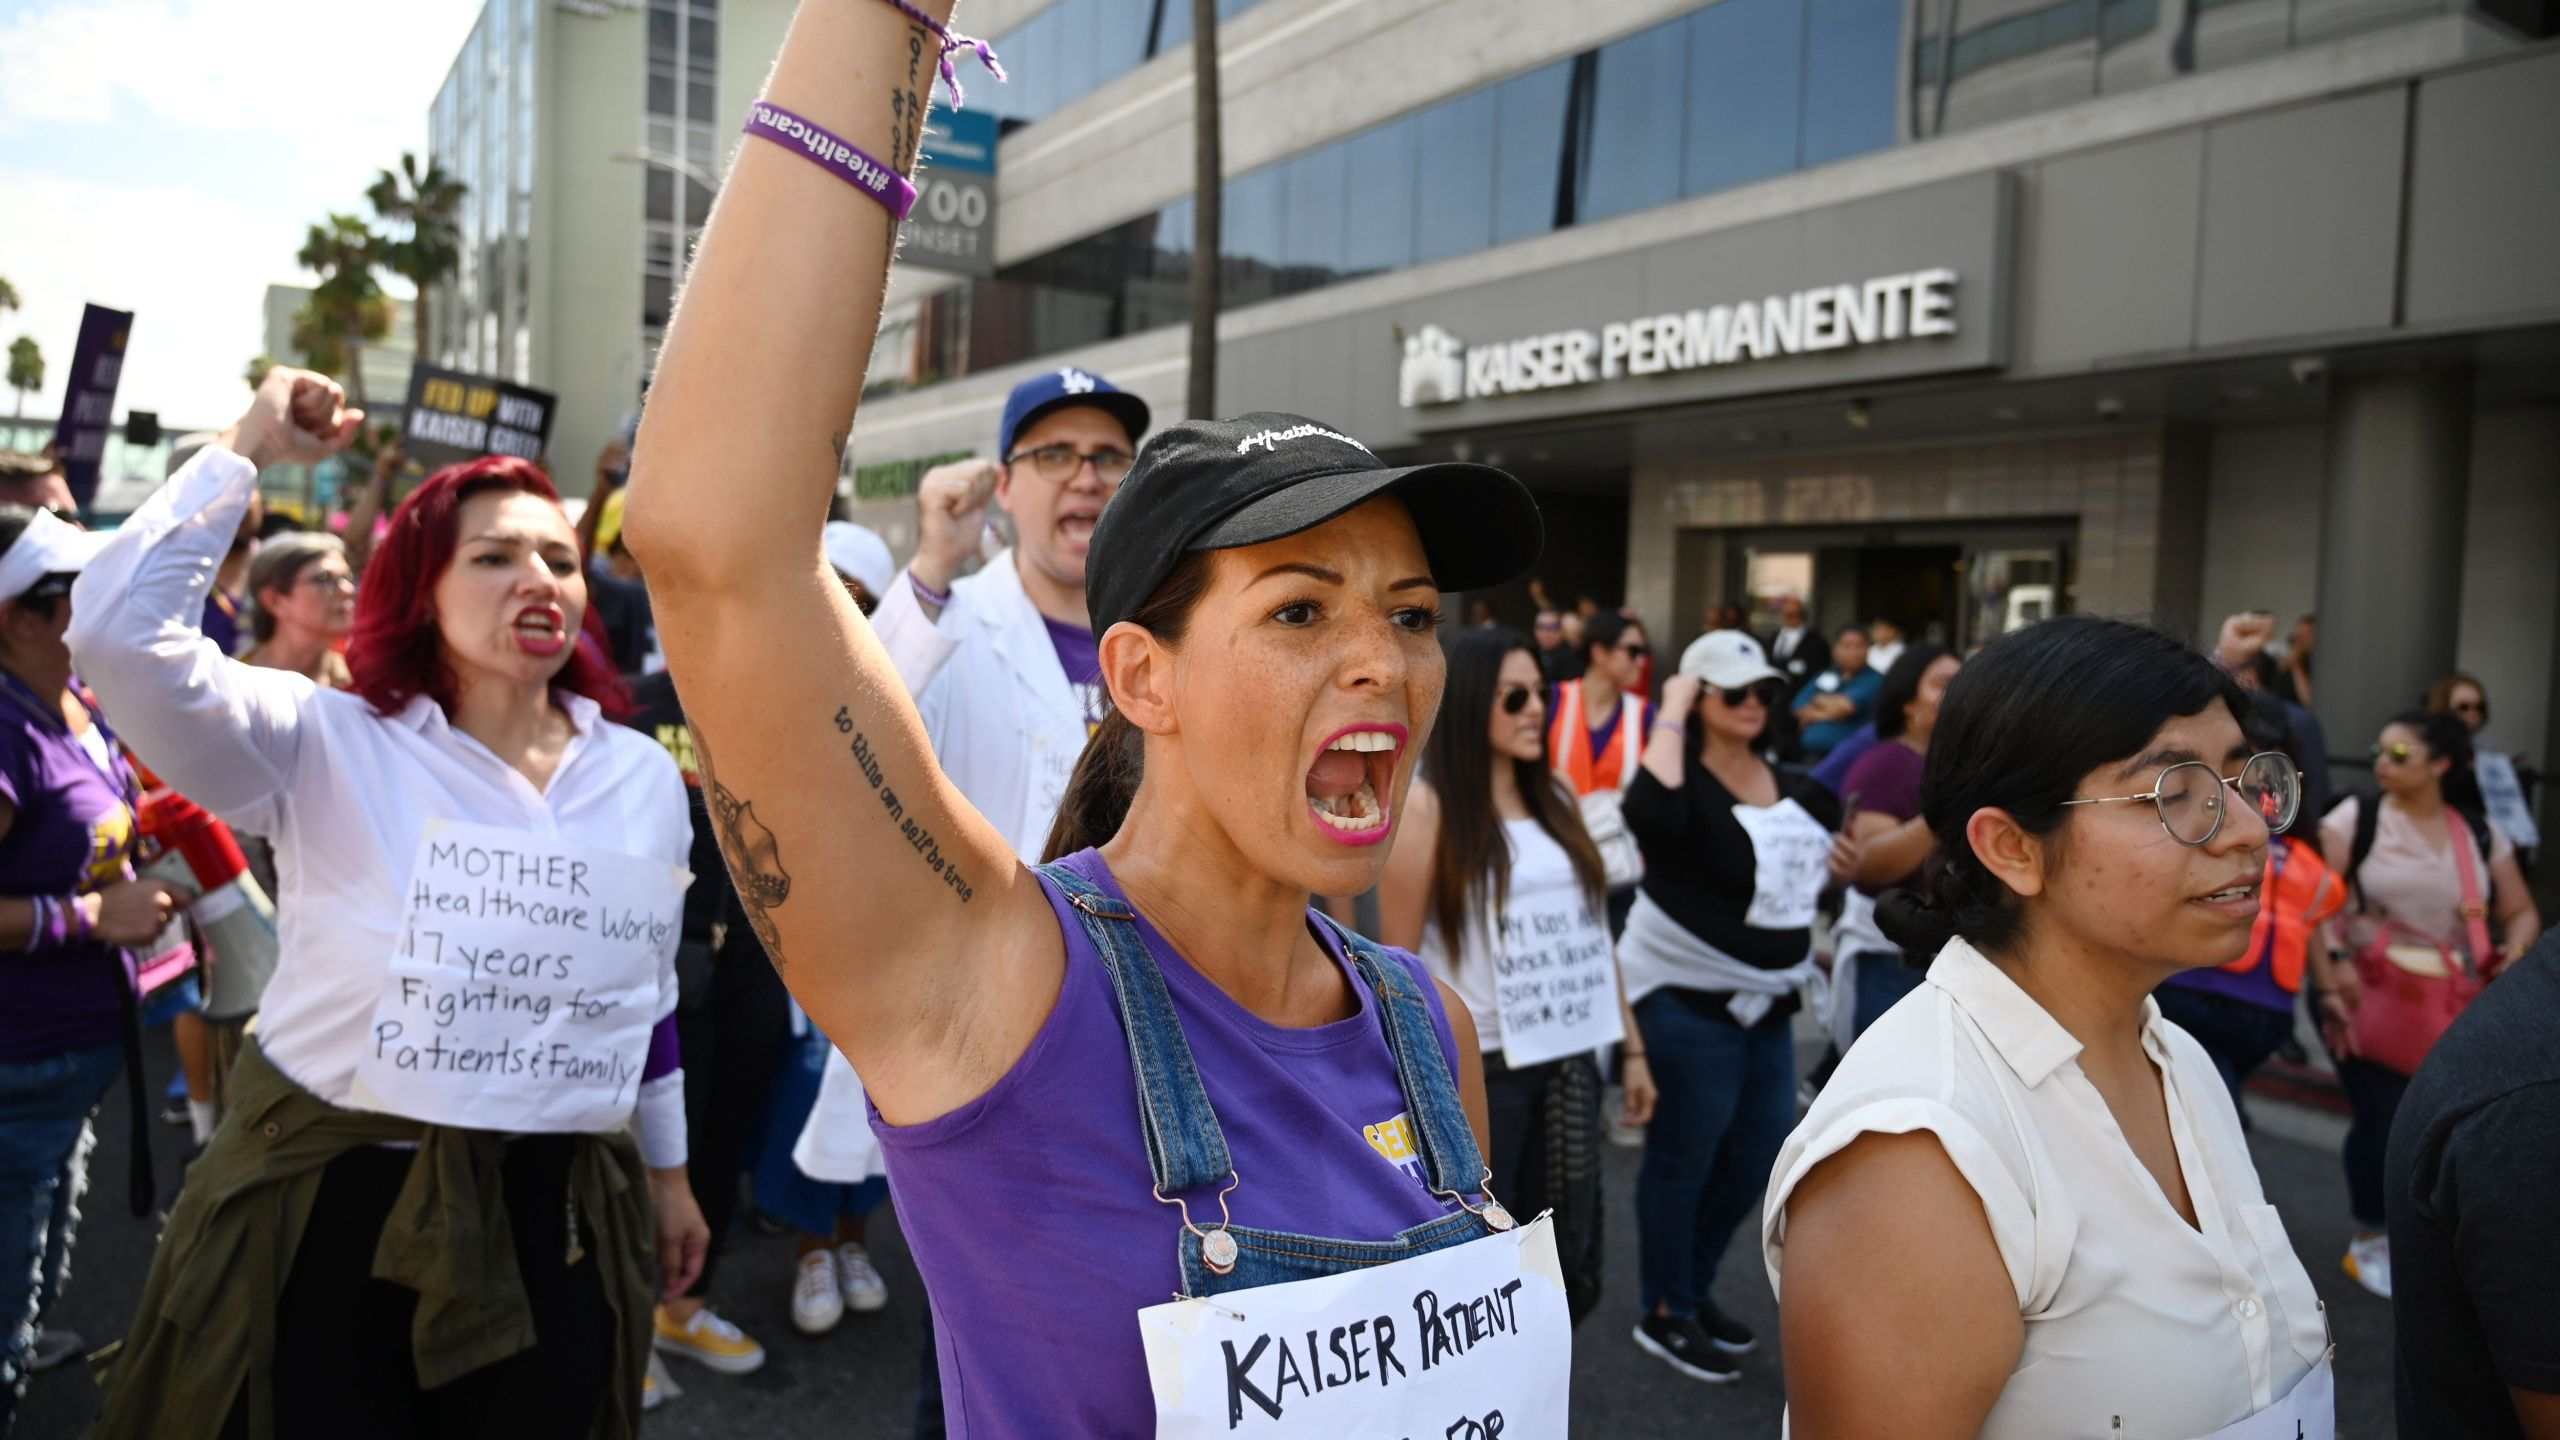 Kaiser Permanente health care workers, patients and their supporters march in a Labor Day protest in Los Angeles on Sept. 2, 2019. (Credit: Robyn Beck / AFP / Getty Images)